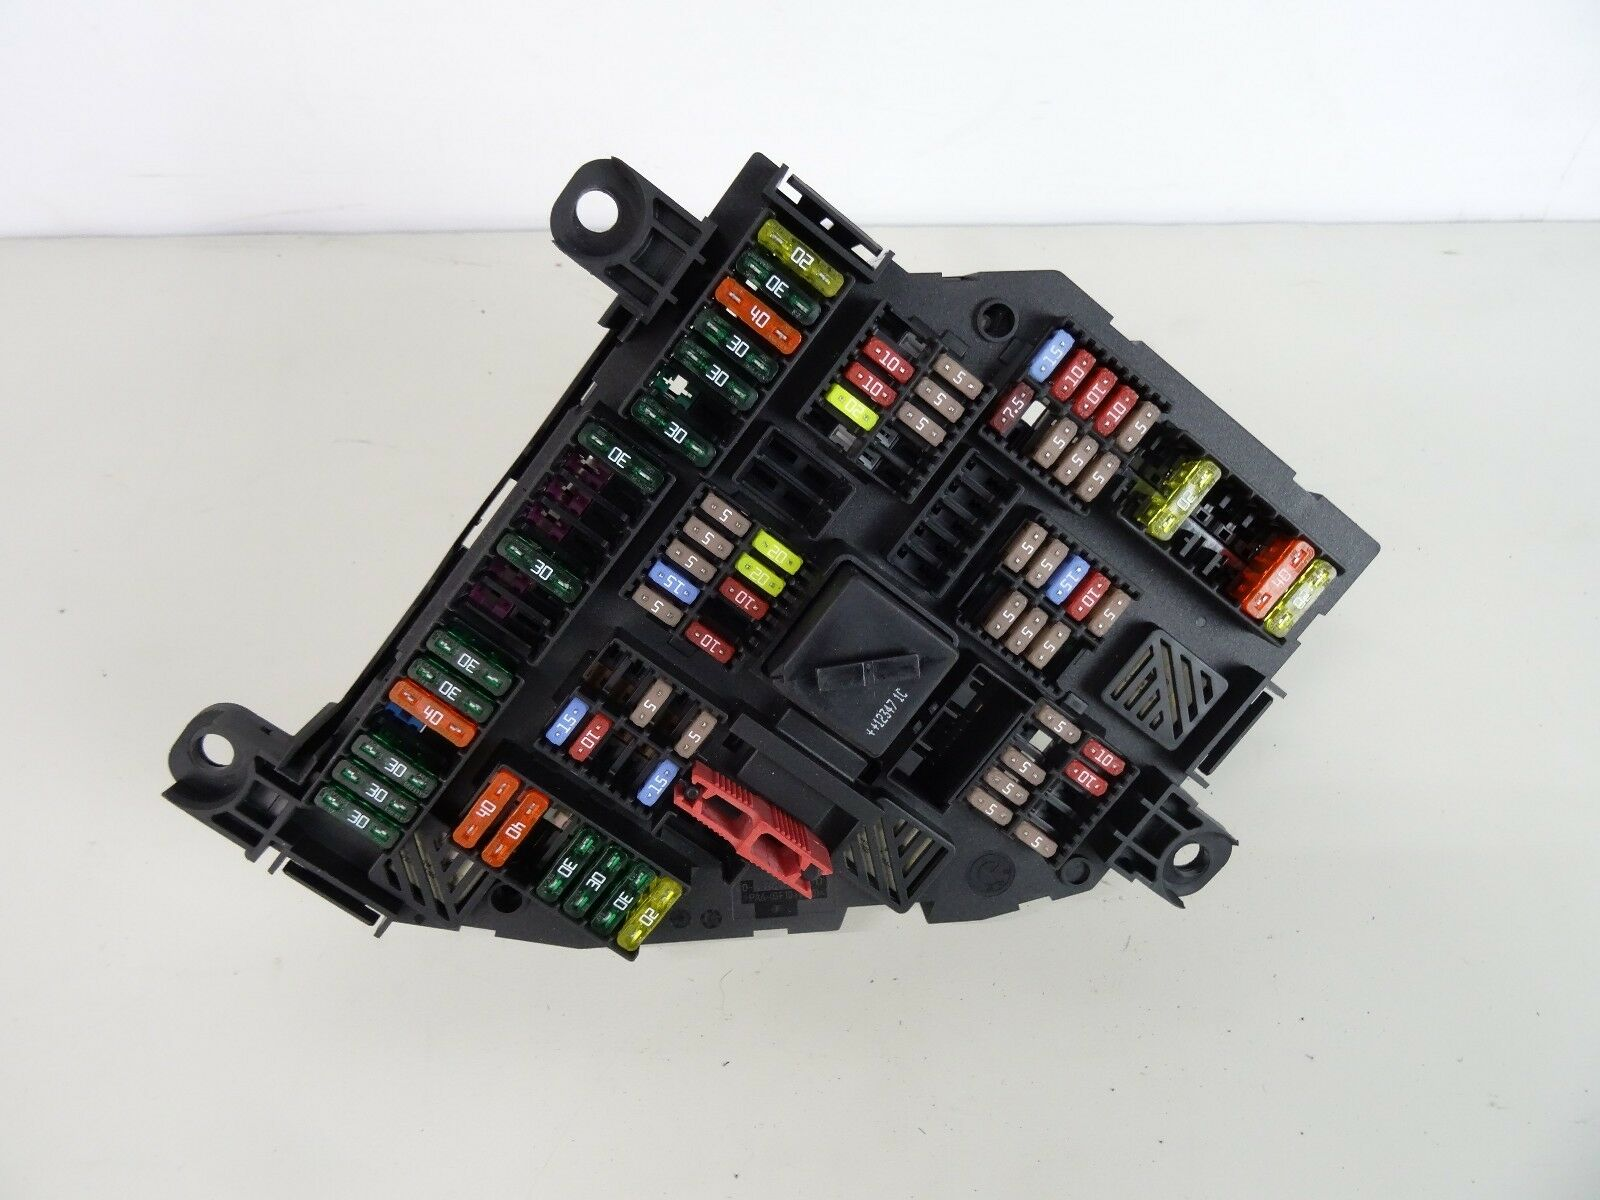 Bmw 5 Series F10 M Sport 2010 2016 Fuse Box 4999 Picclick Uk Buy Spares For I Fuses And 1 Of 6only Available